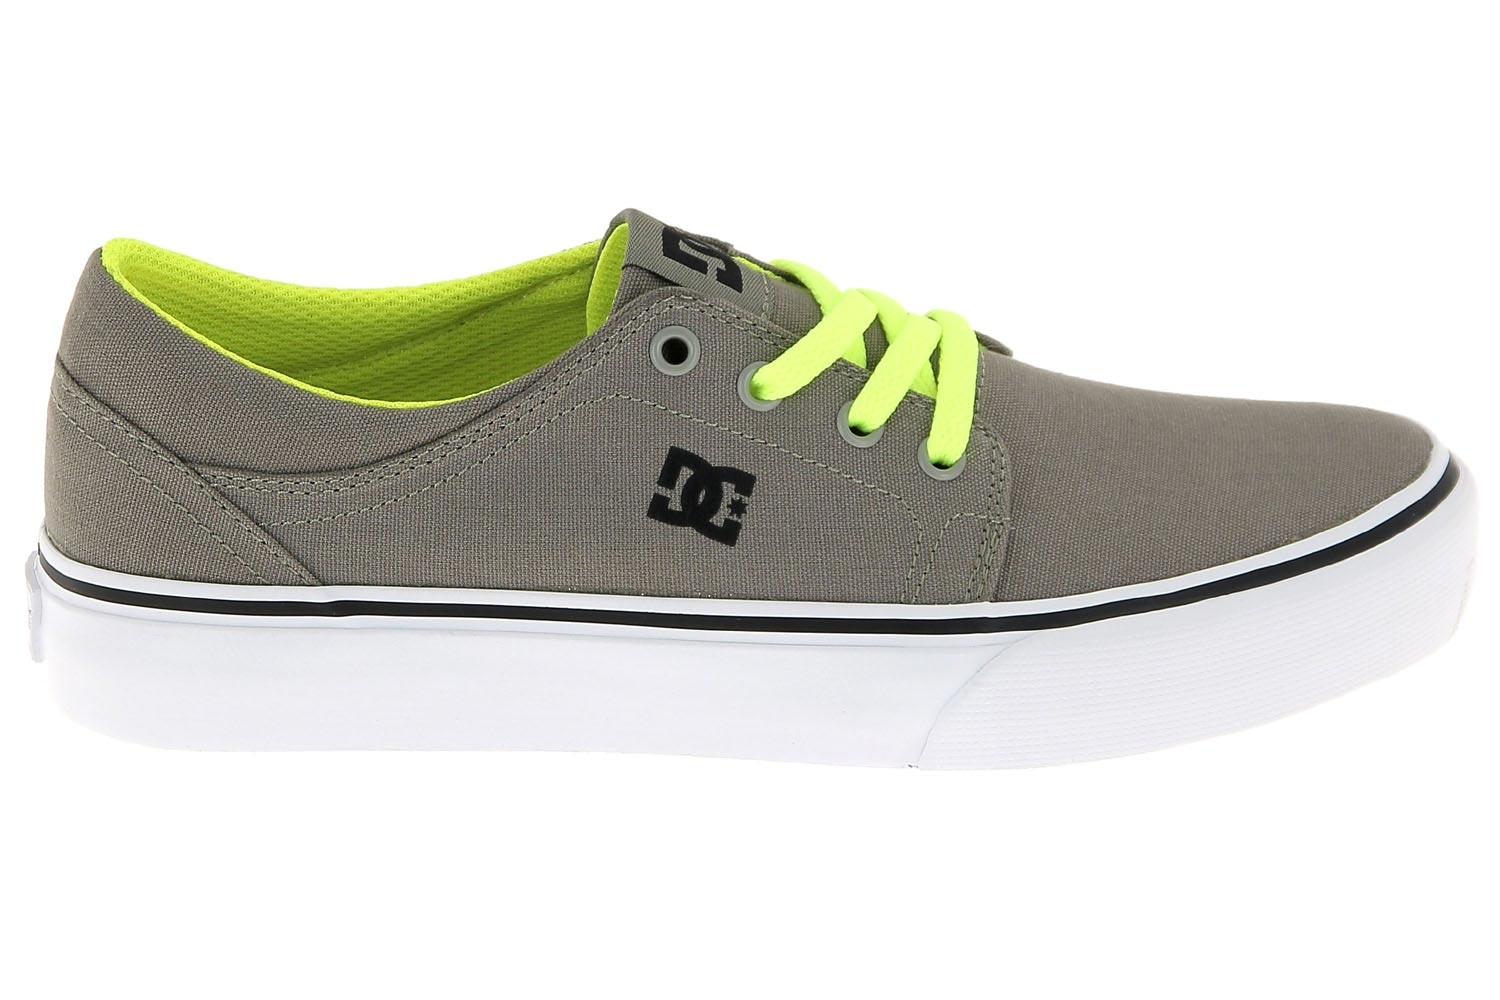 4ea7a9eb6ae4c Chaussures de skate dc shoes taupe trase tx chaussures pour garcon ...